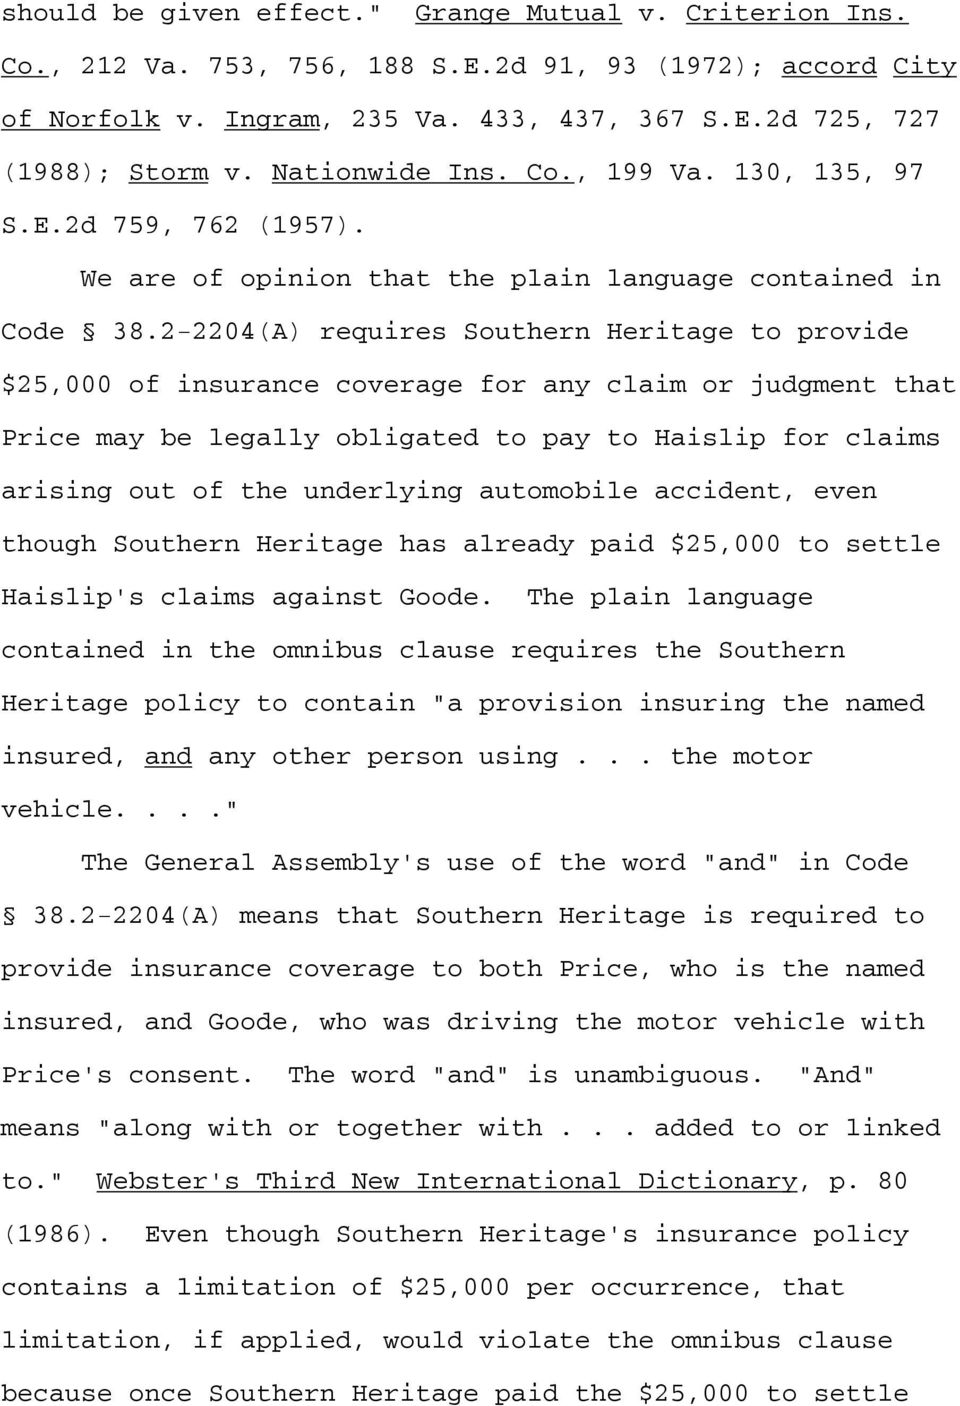 2-2204(A) requires Southern Heritage to provide $25,000 of insurance coverage for any claim or judgment that Price may be legally obligated to pay to Haislip for claims arising out of the underlying